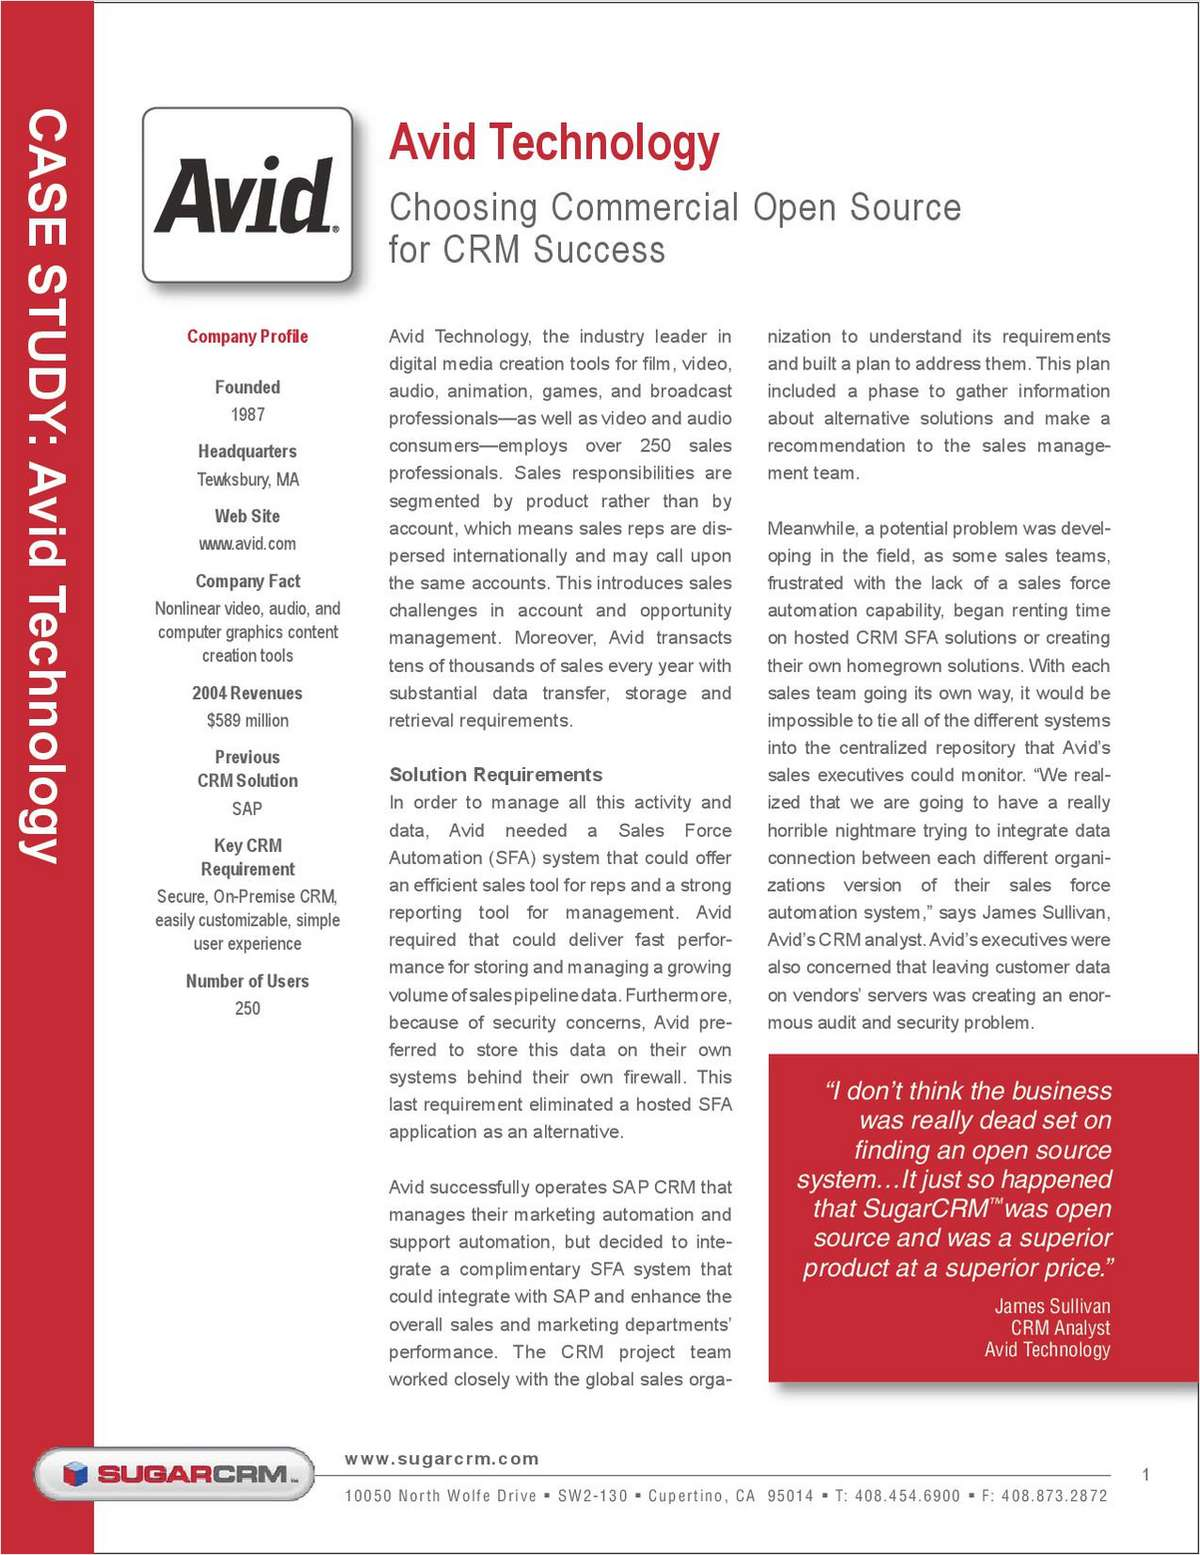 Avid Technology Choosing Commercial Open Source for CRM Success